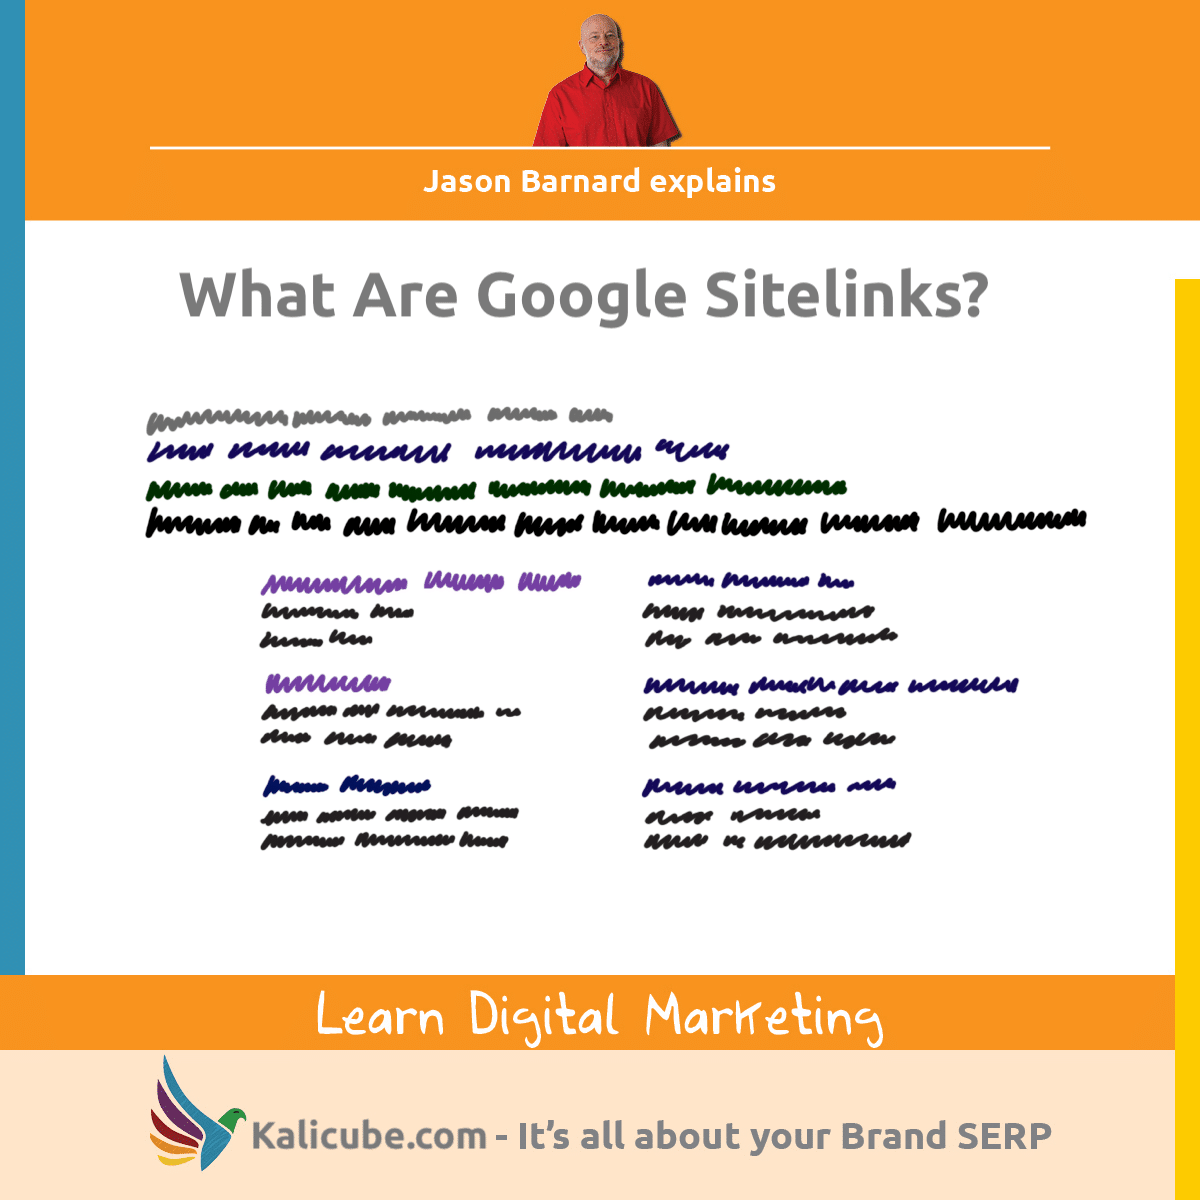 What Are Google Sitelinks and How Do They Work?